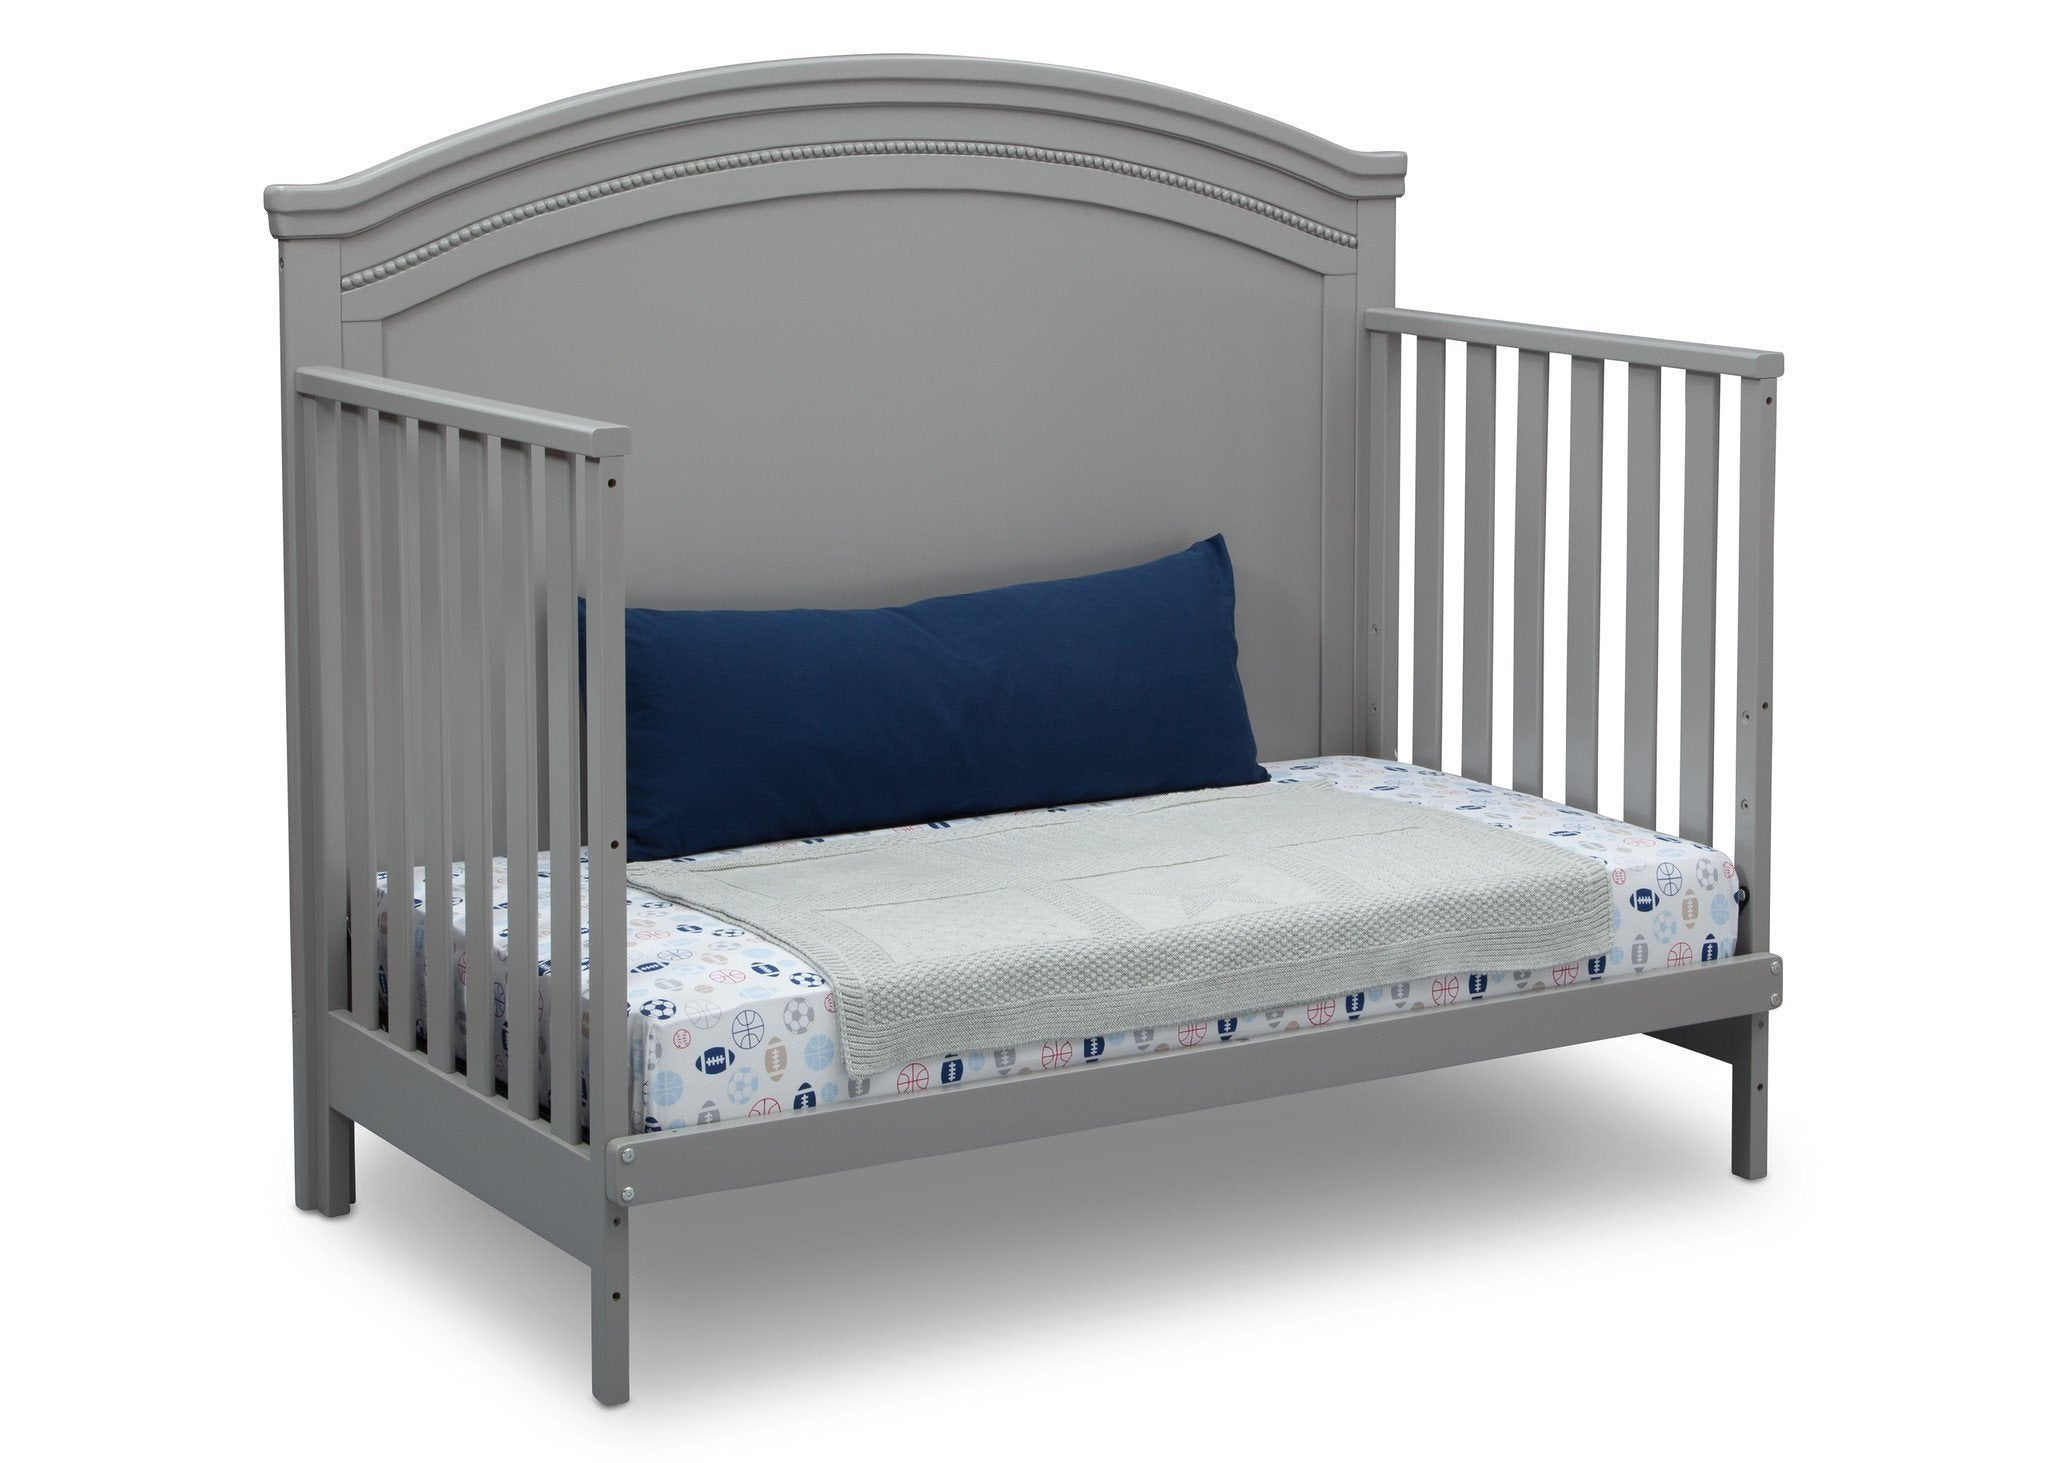 Simmons Kids Grey (026) Emma Crib 'N' More Angled Day Bed Conversion View a5a